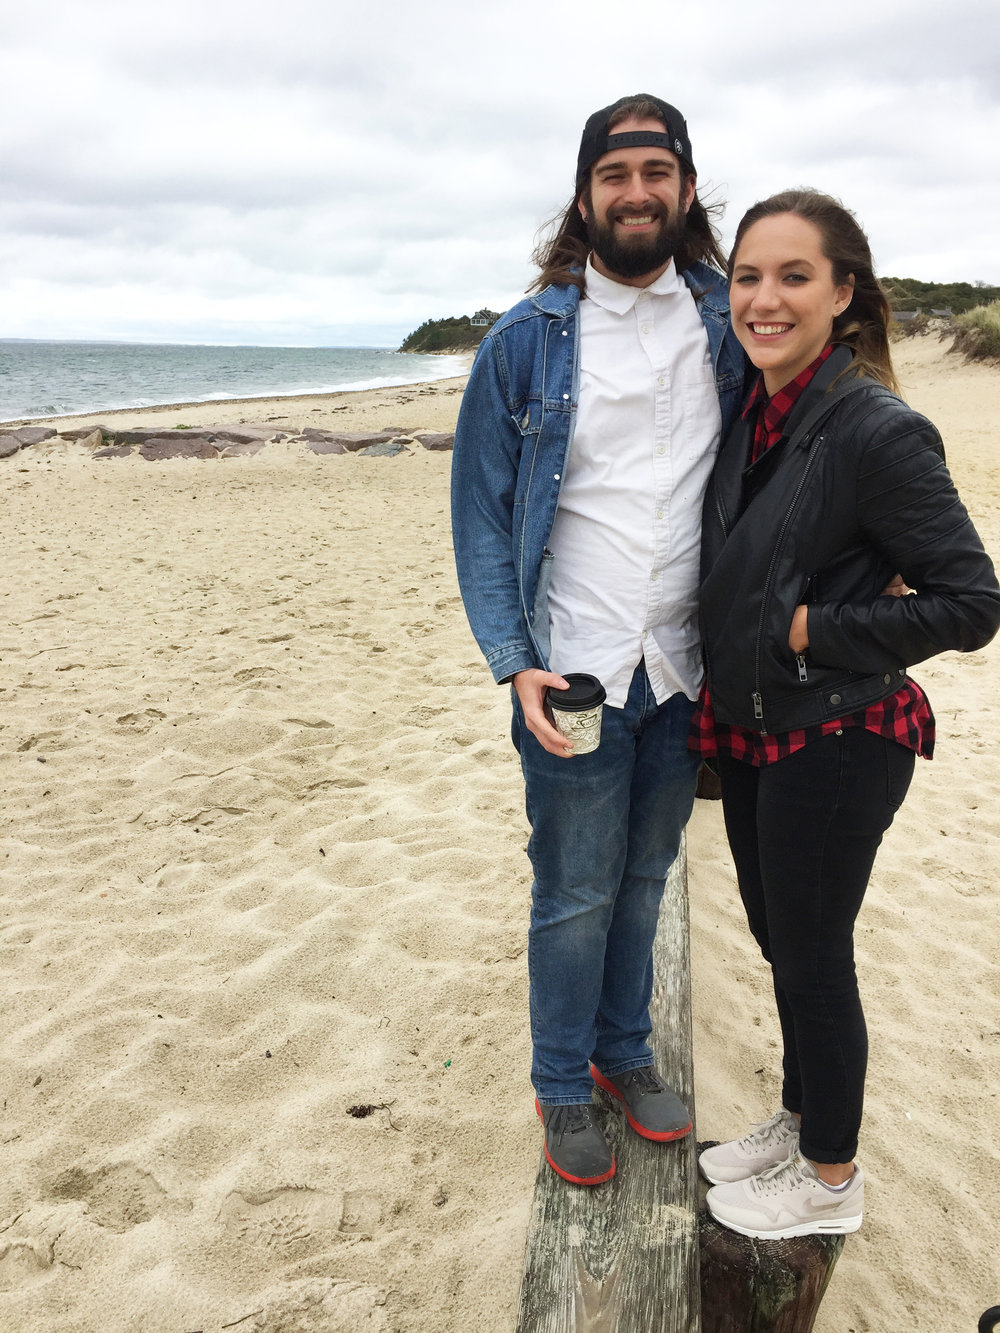 Jeremy and his girlfriend Michelle at Martha's Vineyard, Mass.